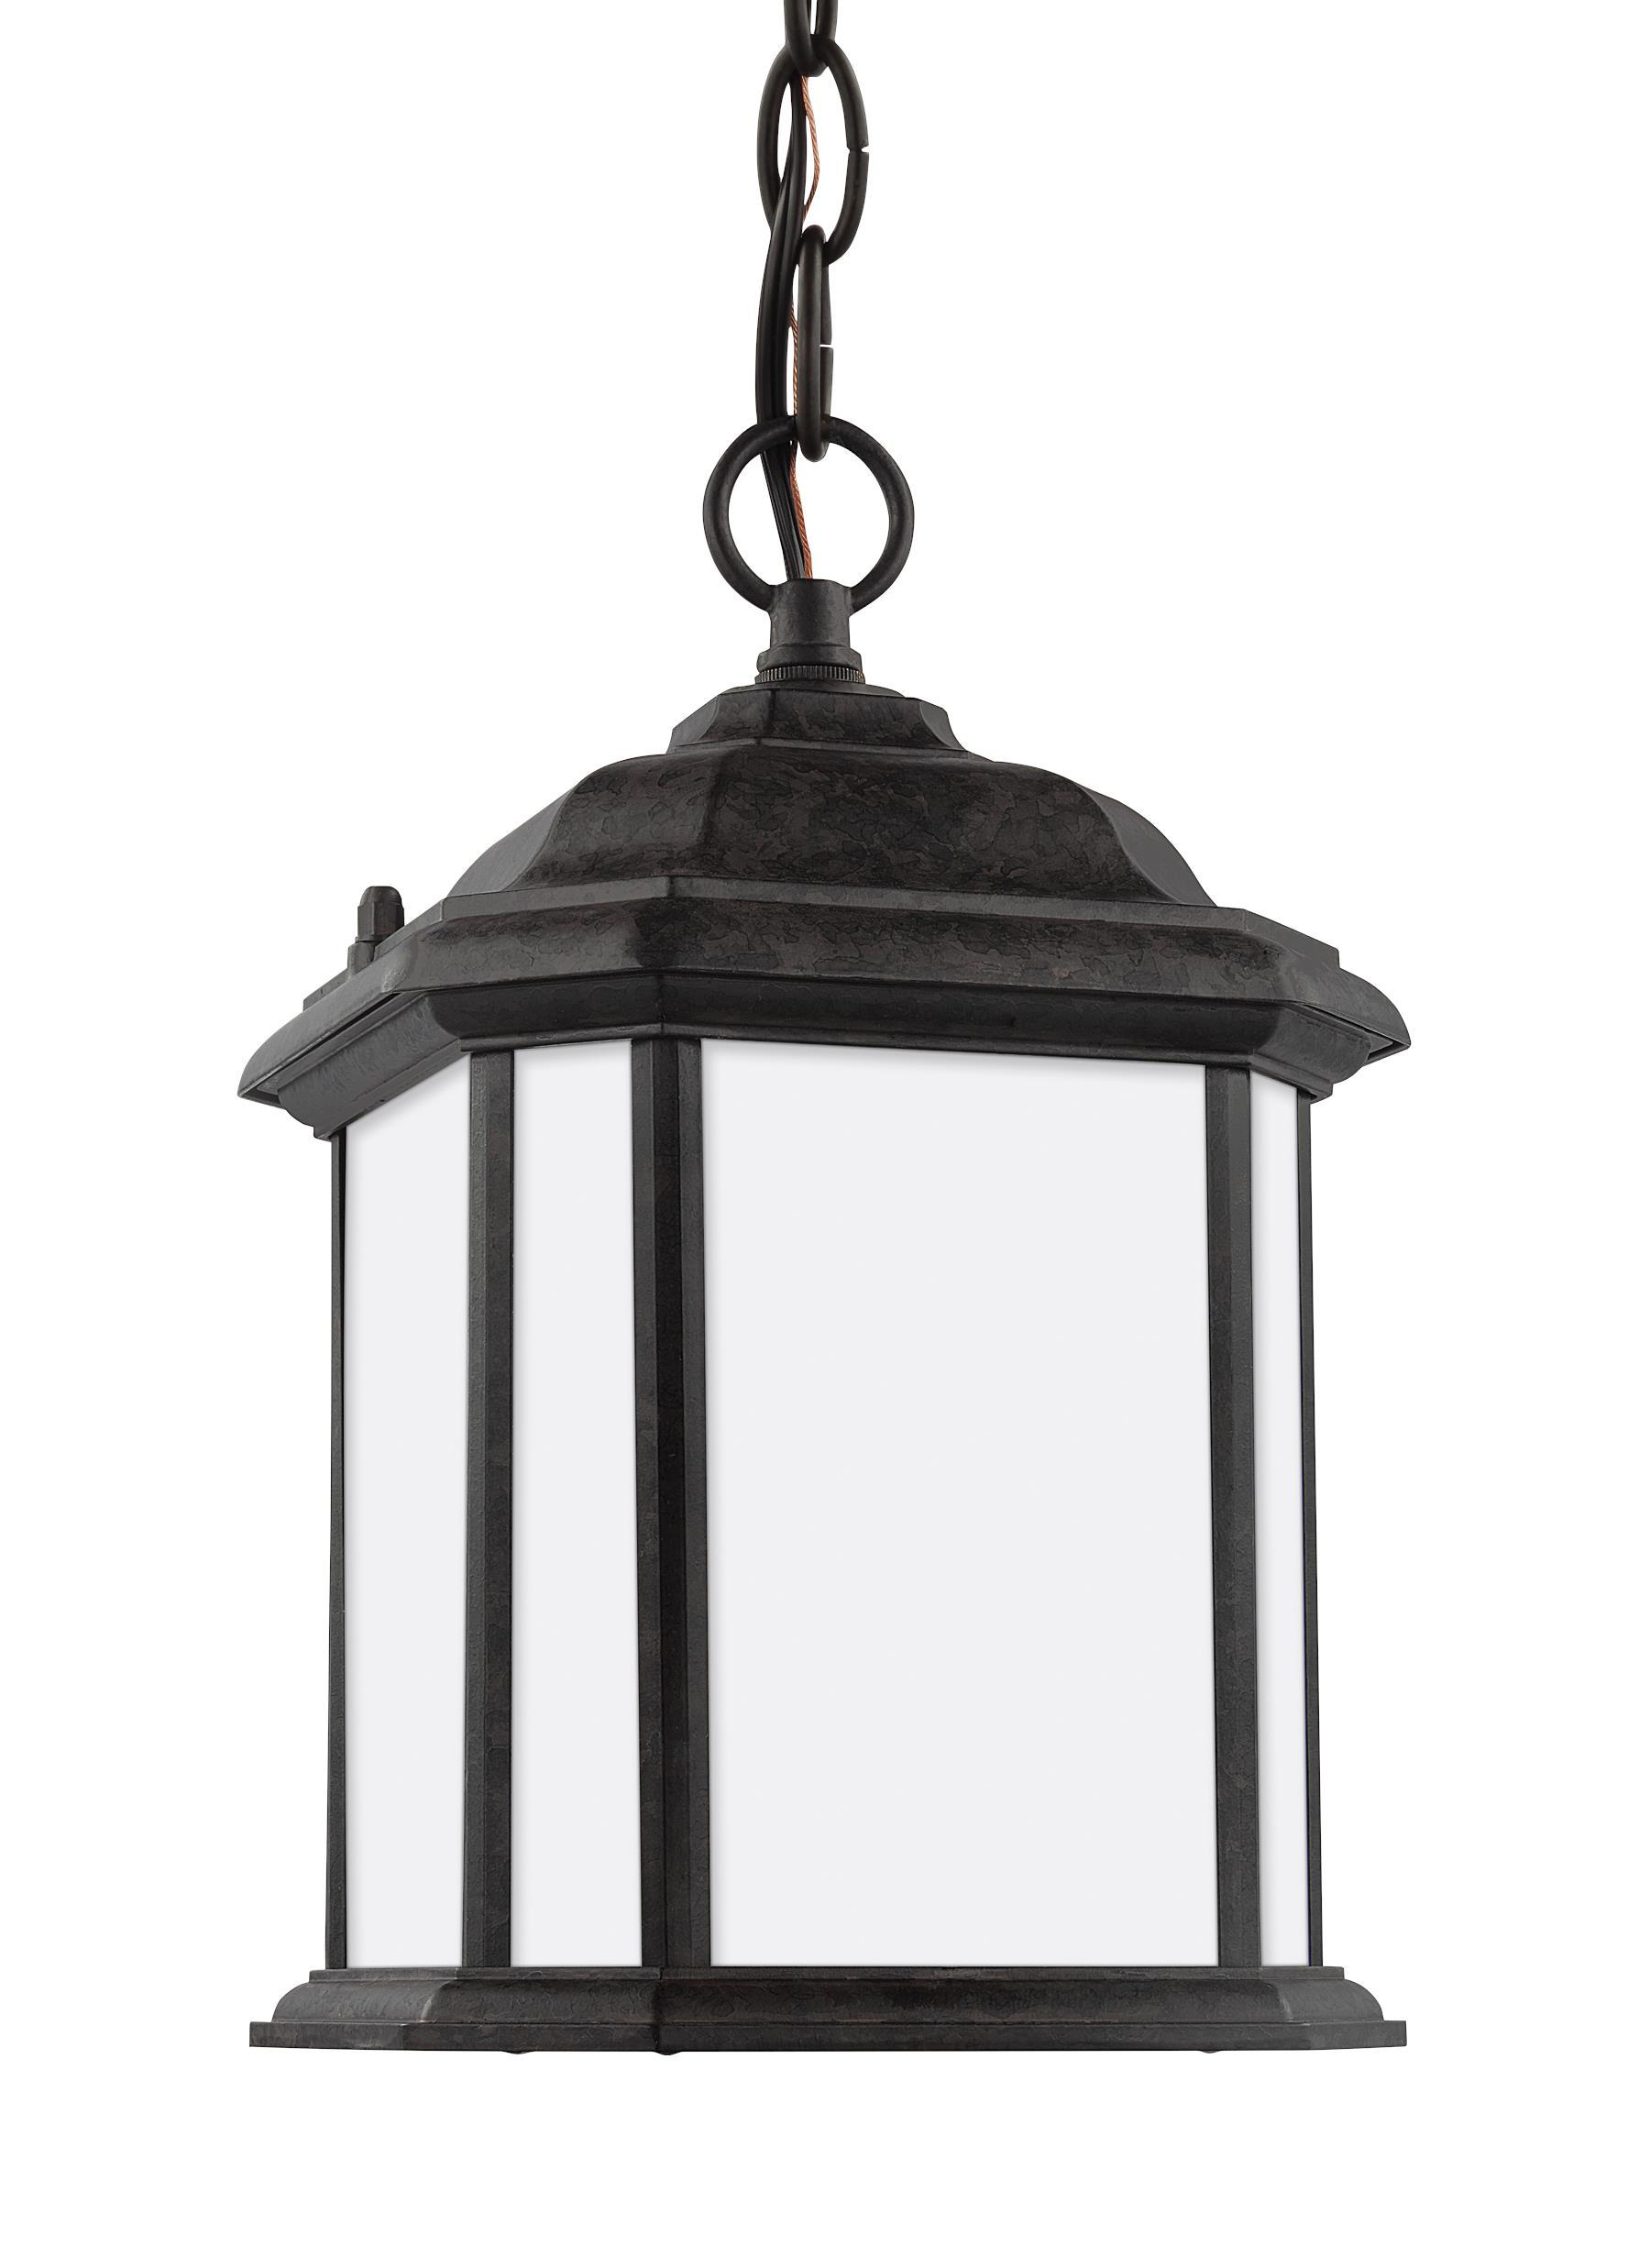 Kent One Light Outdoor Semi-Flush Convertible LED Pendant - Oxford Bronze Outdoor Sea Gull Lighting